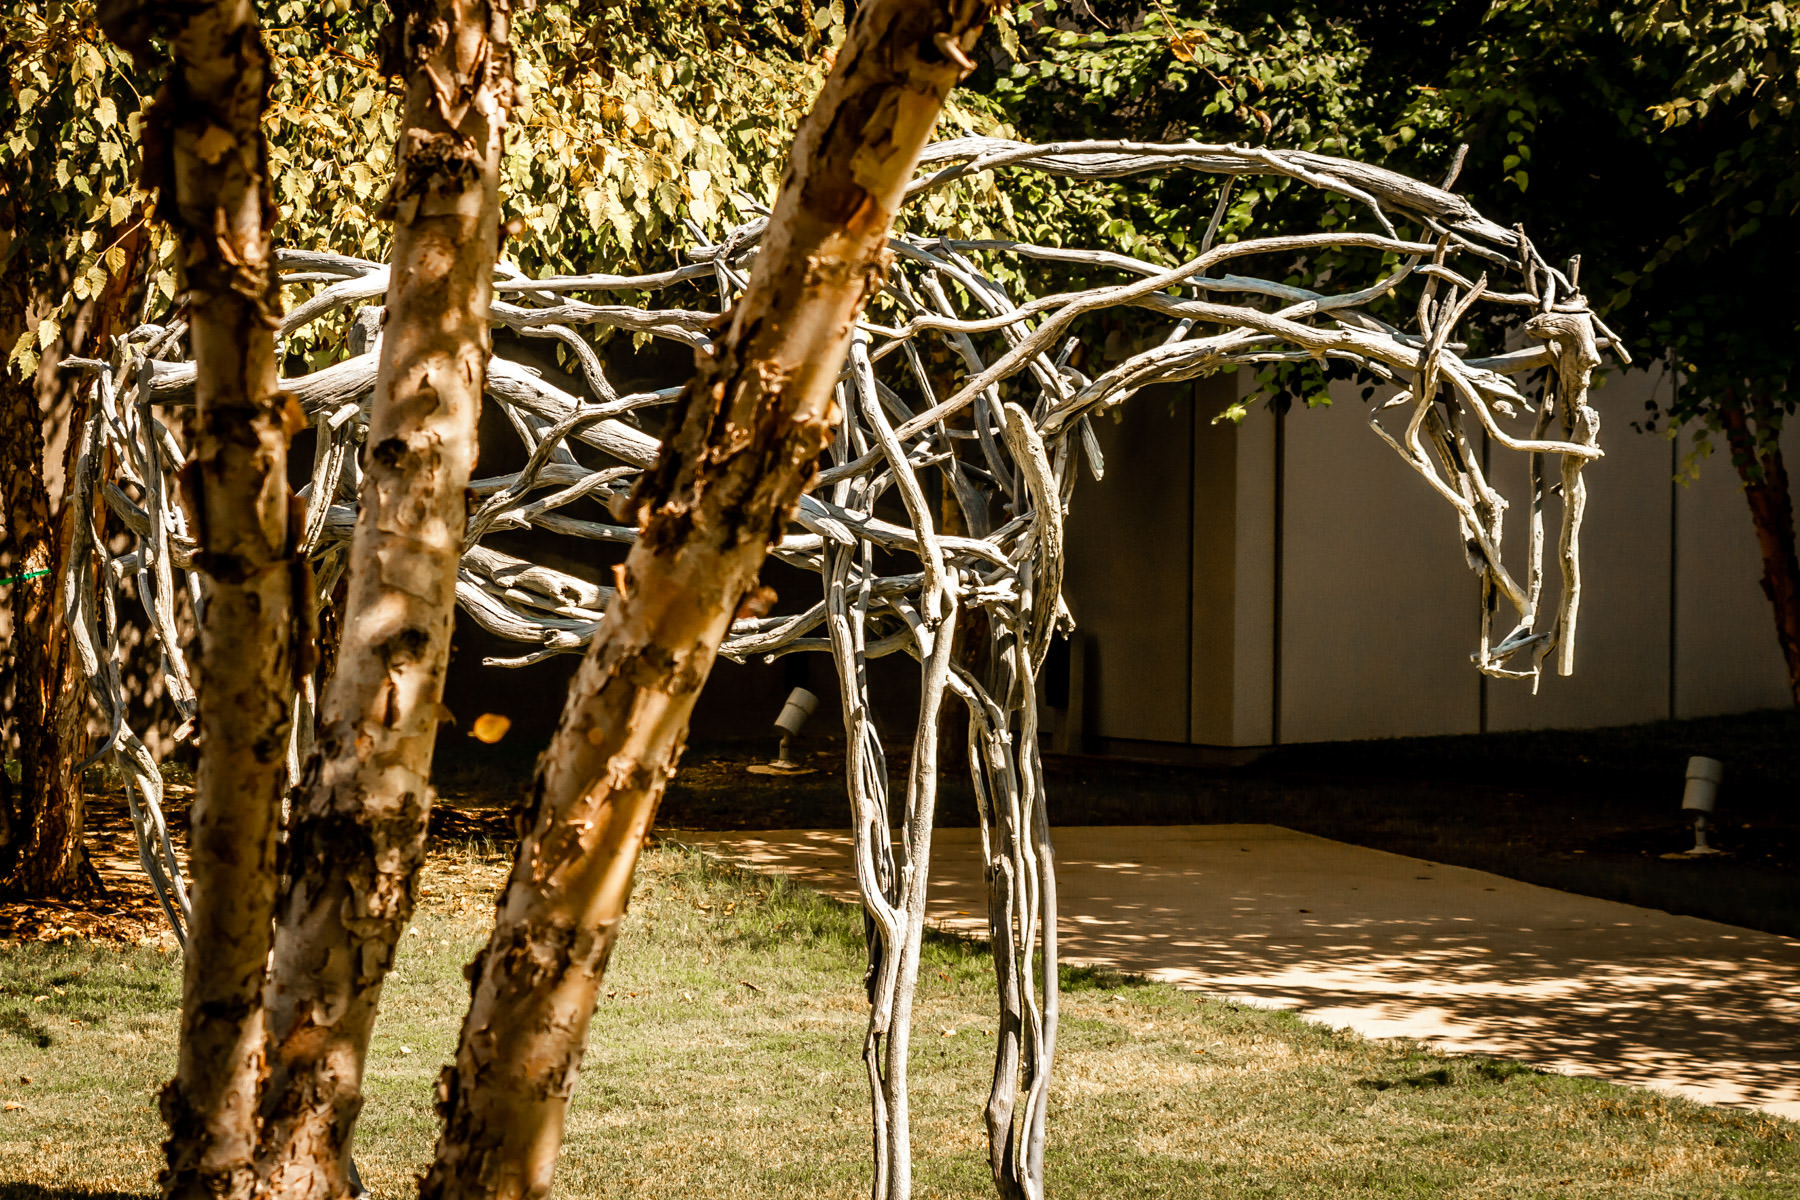 A abstract sculpture of a horse at Fort Worth, Texas' Museum of Modern Art.